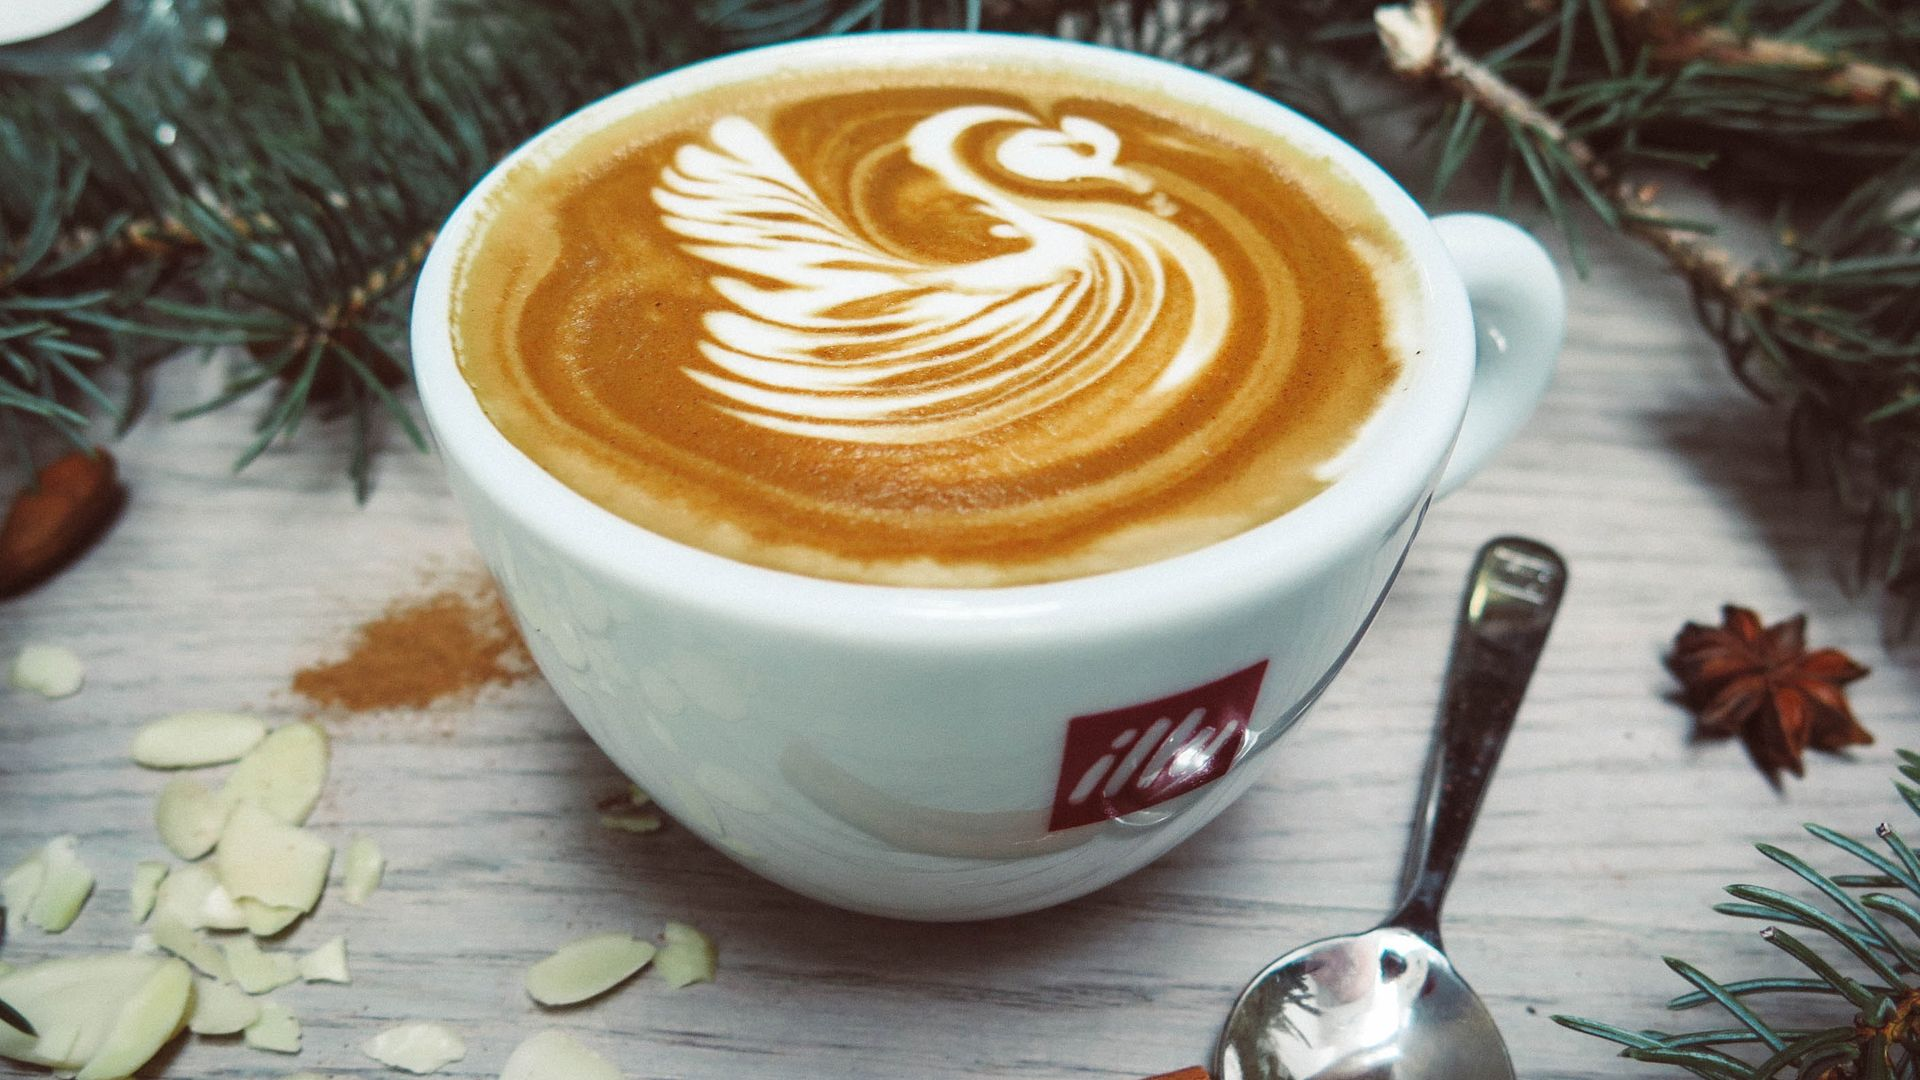 design,cappuccino,conception,food,pattern,swan,drift,emollient,range,intent,purpose,coffee art,vagabond,nutrient,white,with,excogitation,cream